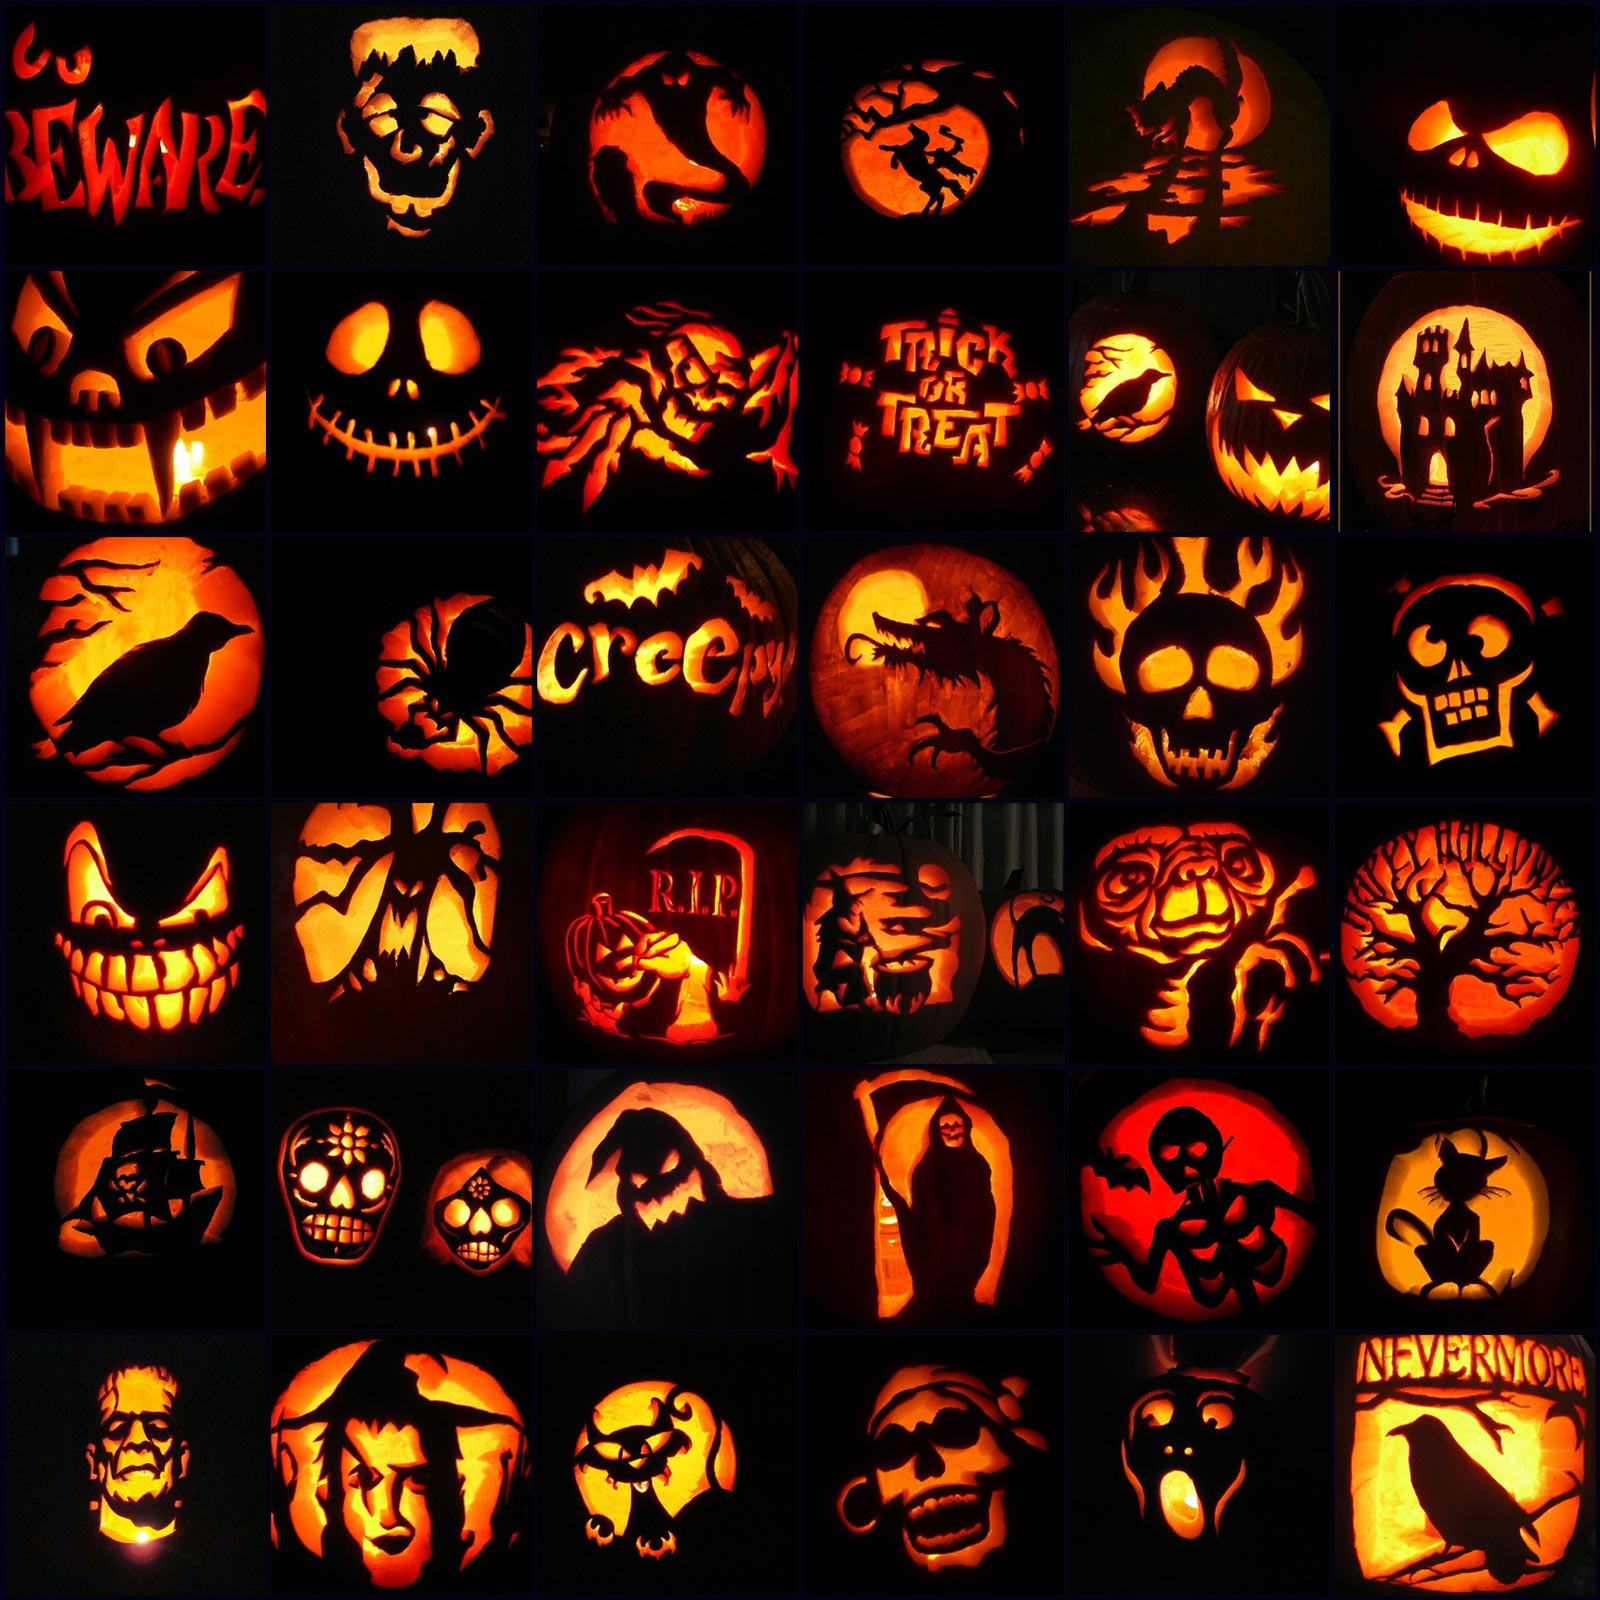 600 Scary Halloween Pumpkin Carving Face Ideas Amp Designs